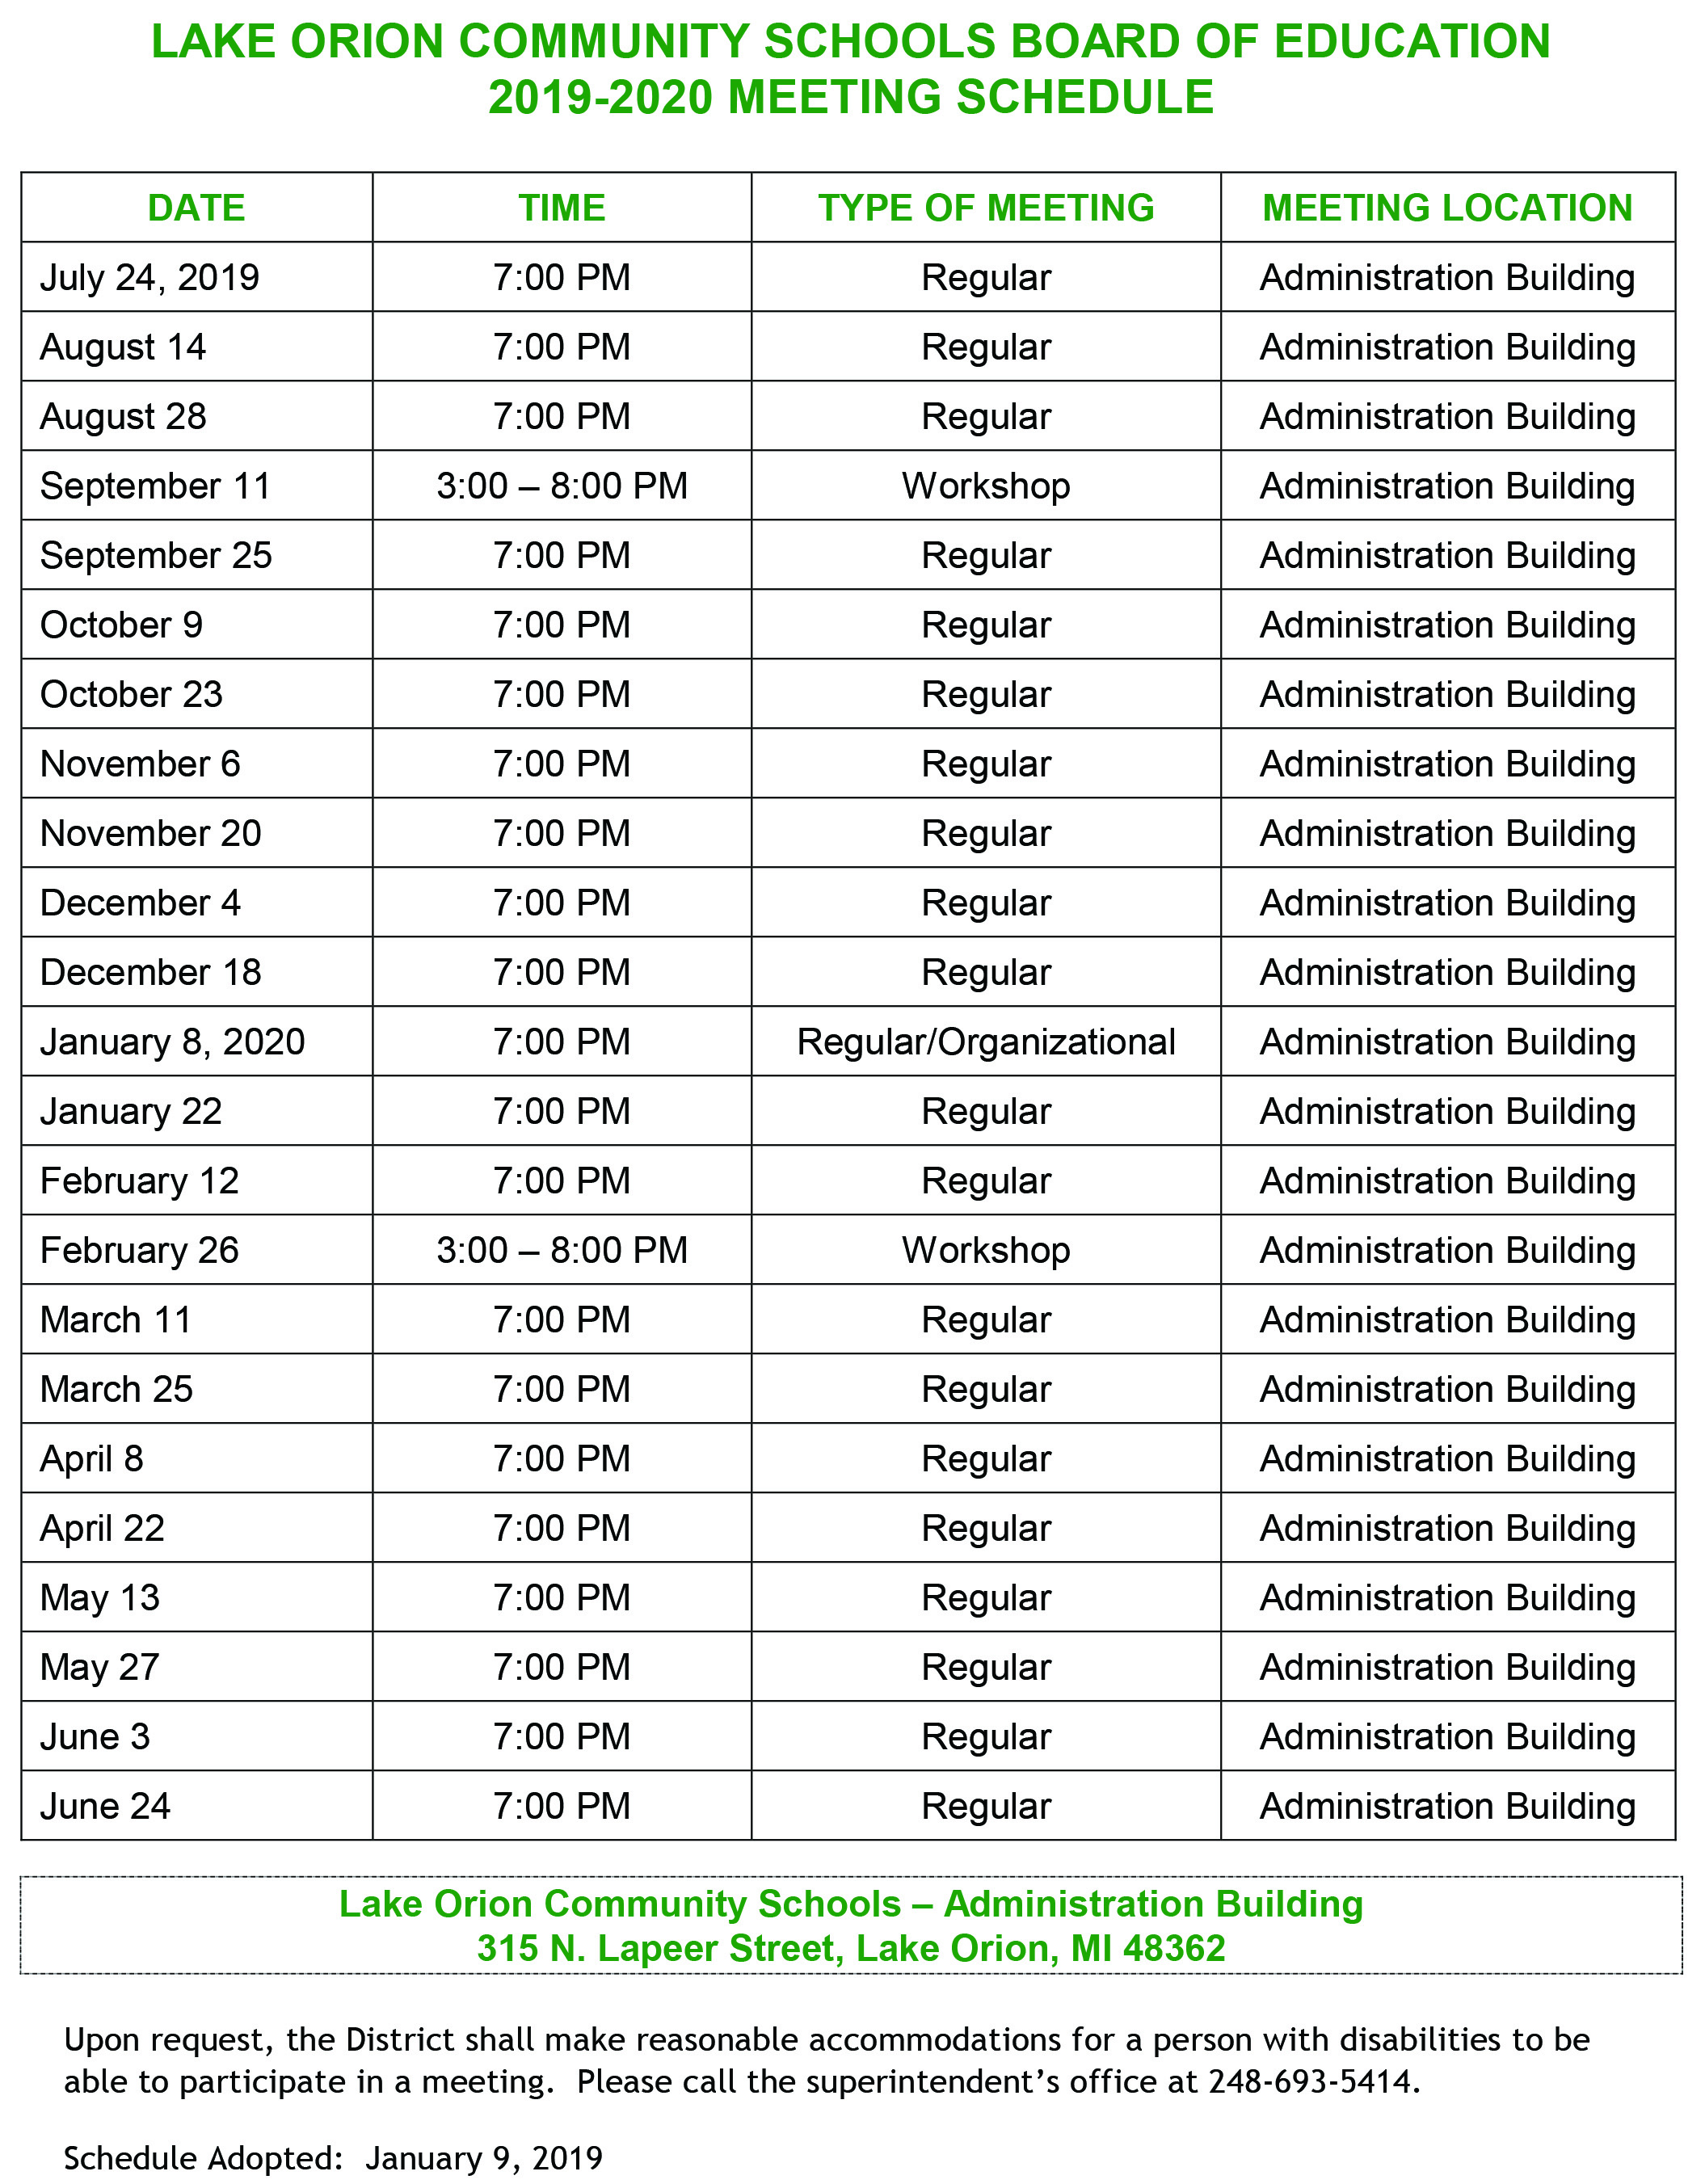 LOCS Board meeting schedules